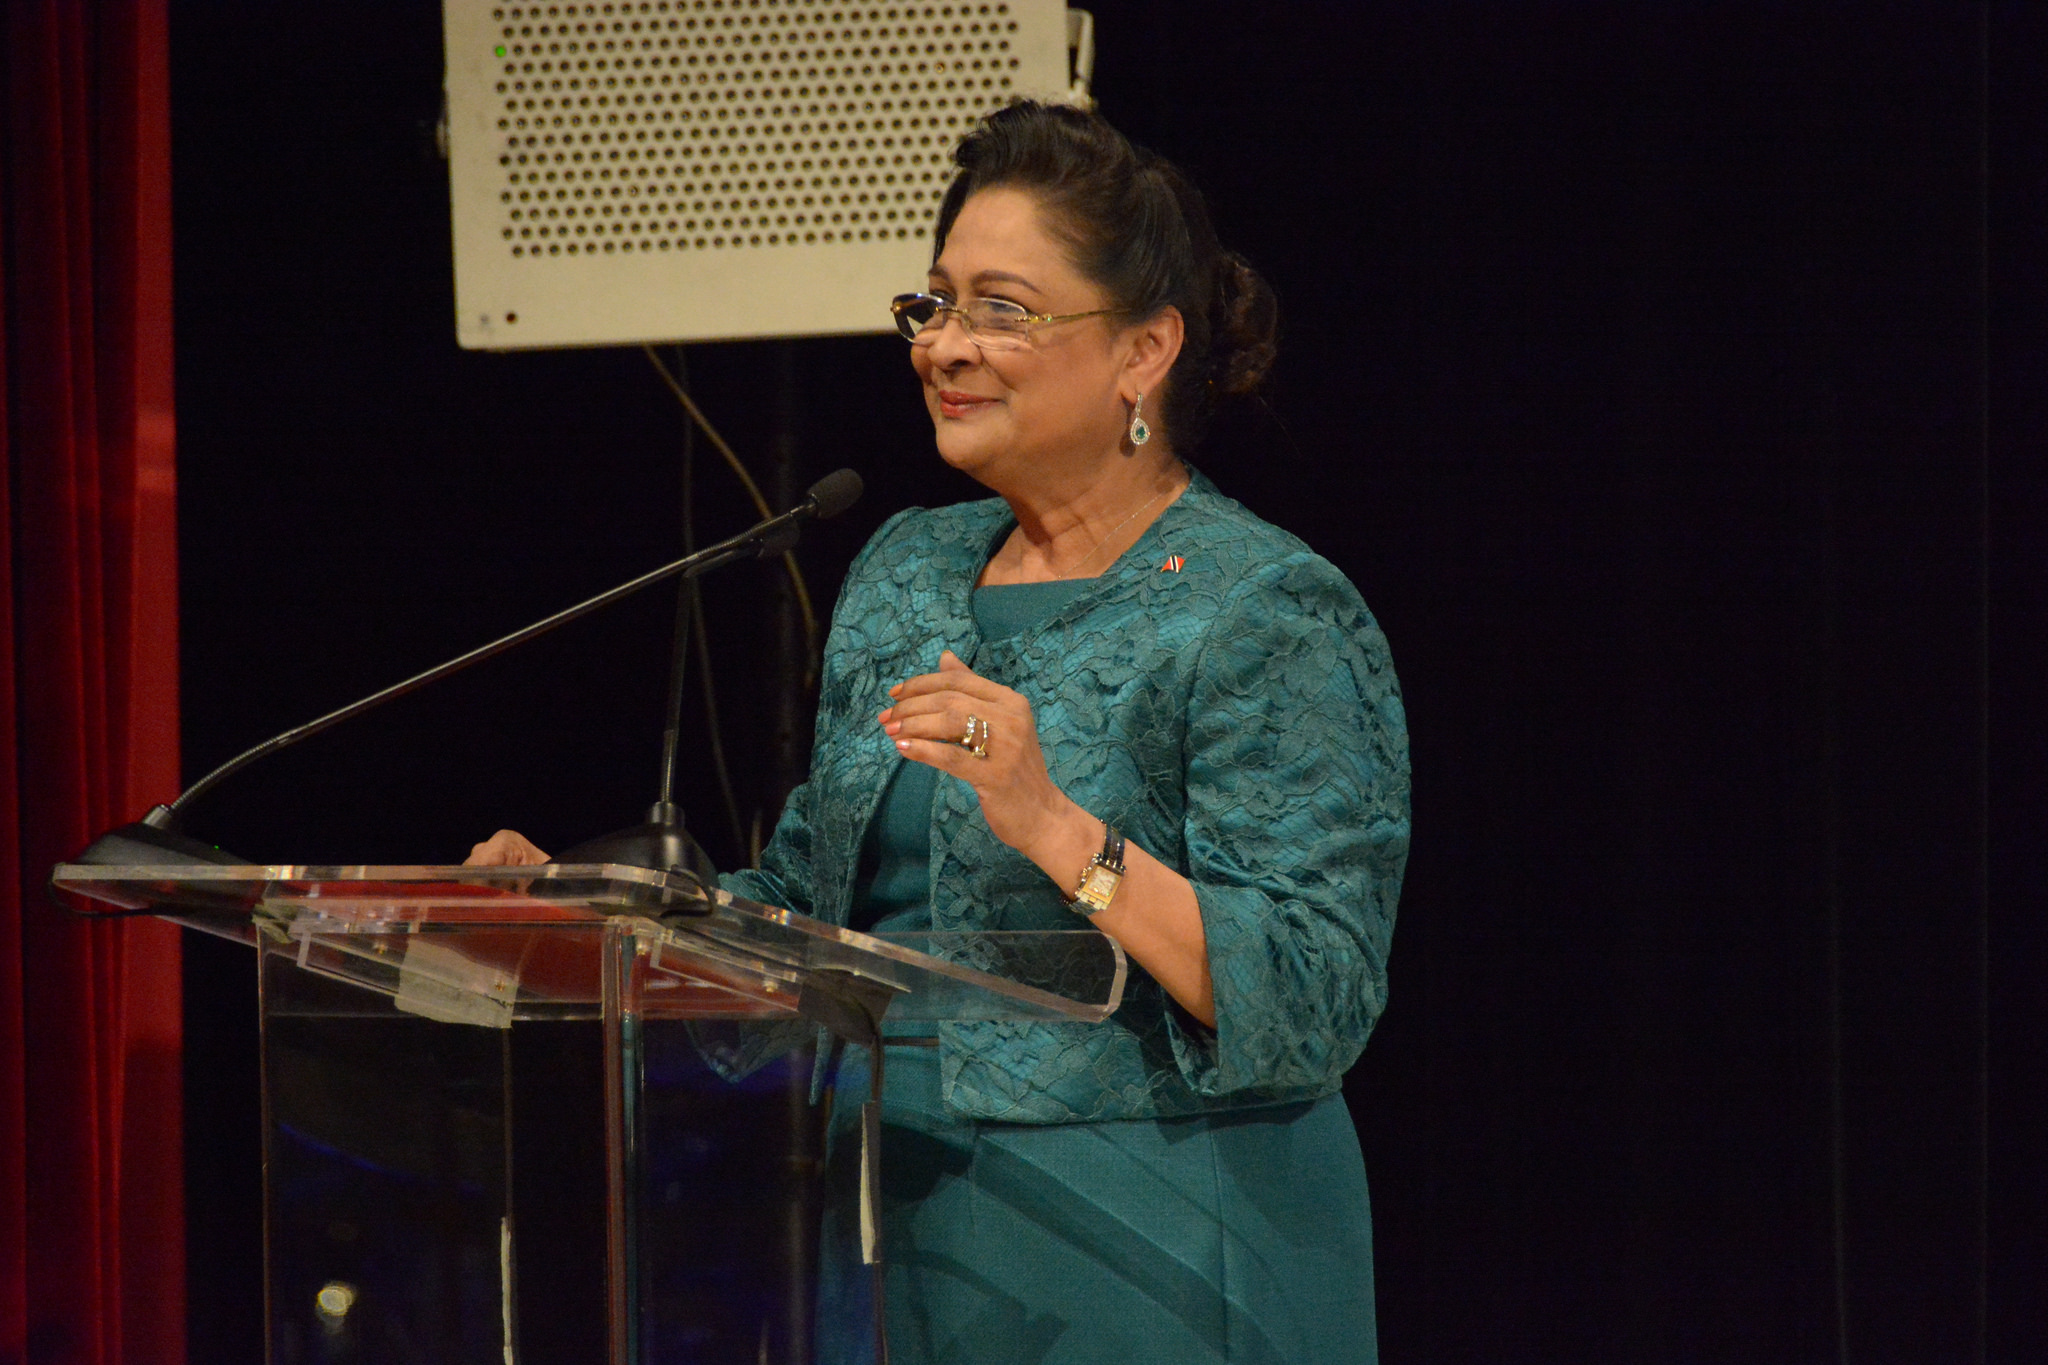 Kamla Persad-Bissessar, former Prime Minister of Trinidad and Tobago. Photo by OEA - OAS, used under a CC BY-NC-ND 2.0 license.